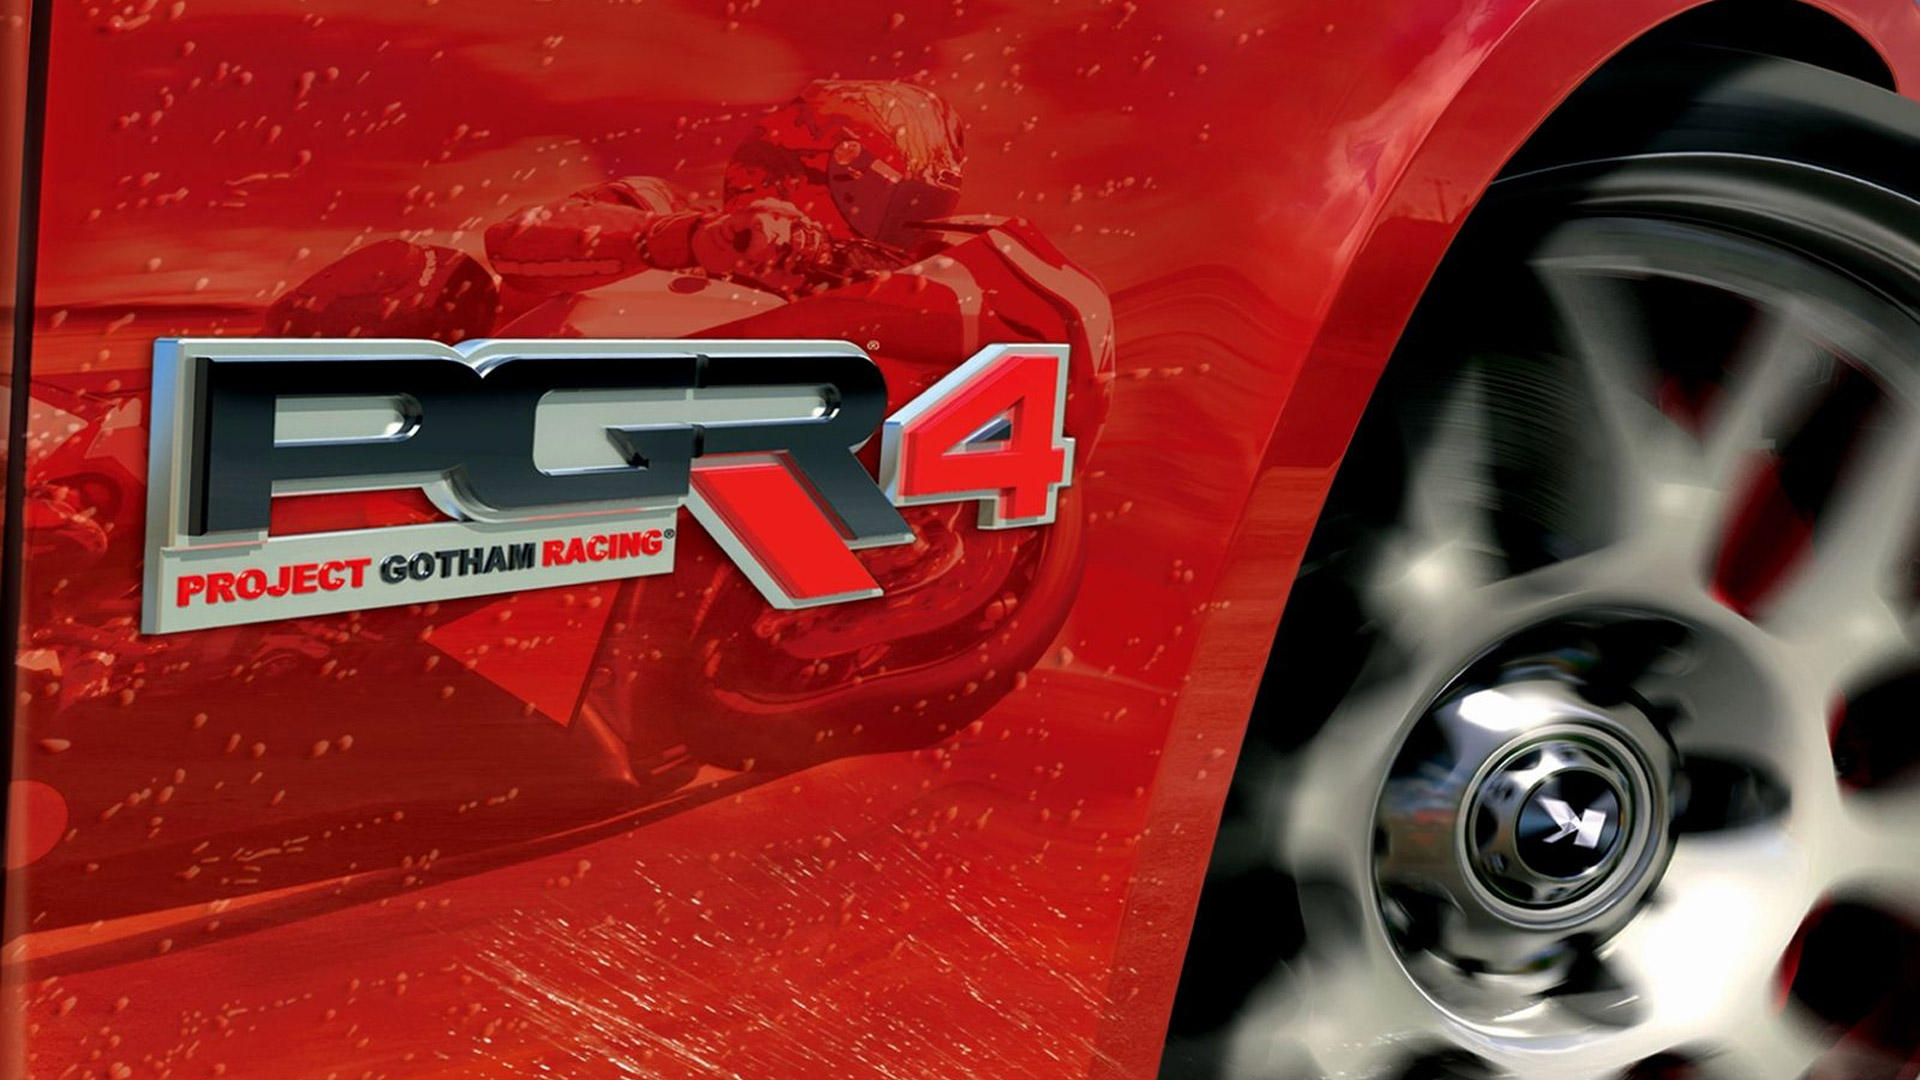 Project Gotham Racing 4 Wallpaper in 1920x1080